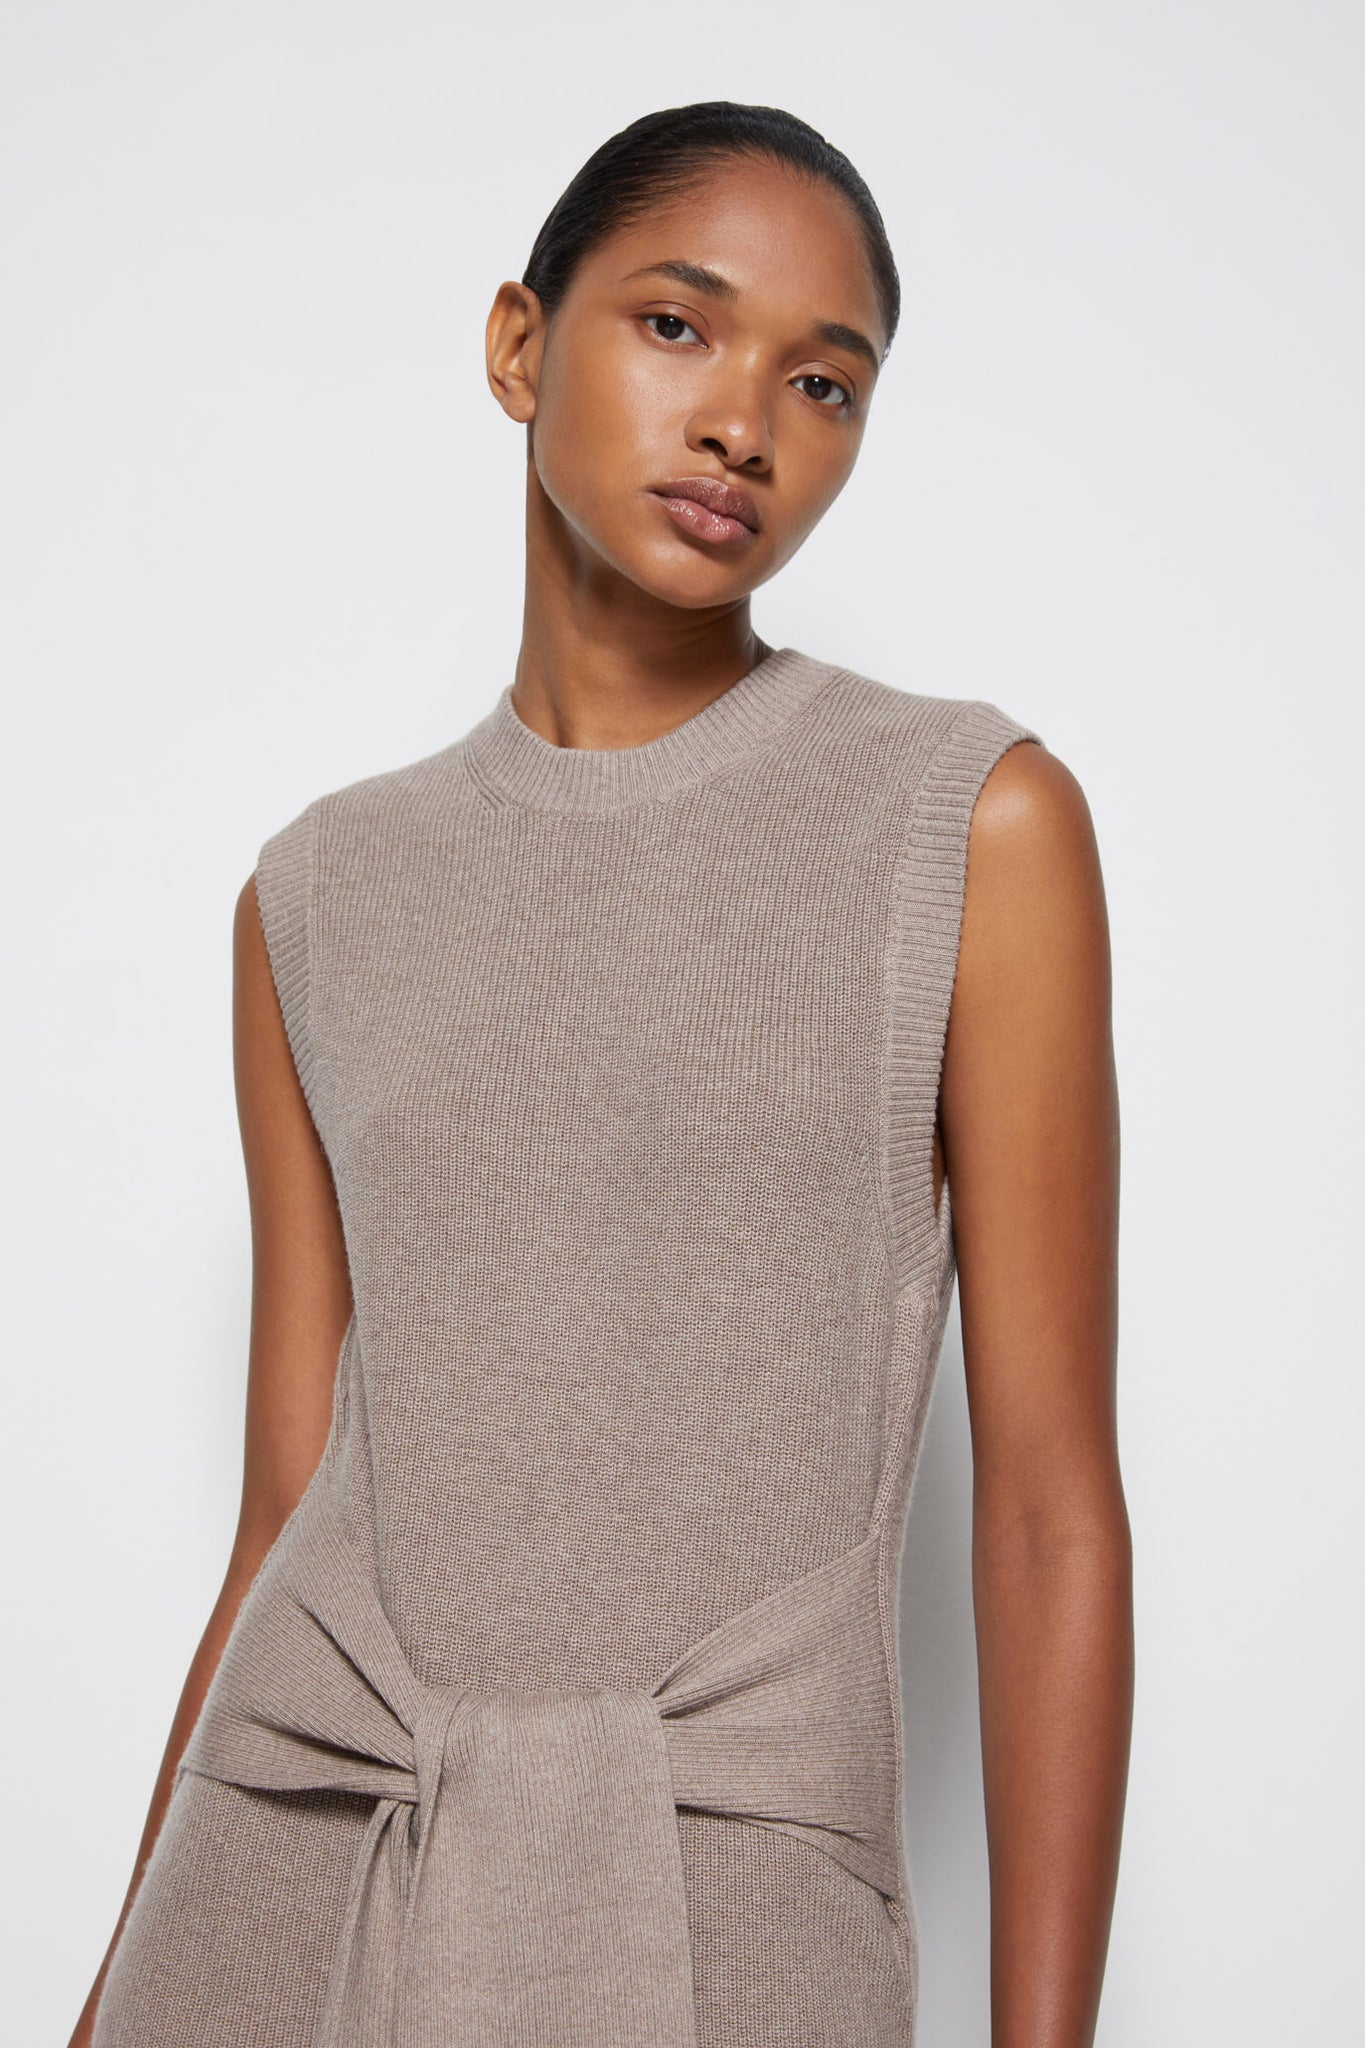 Off-Duty Cashmere Dress